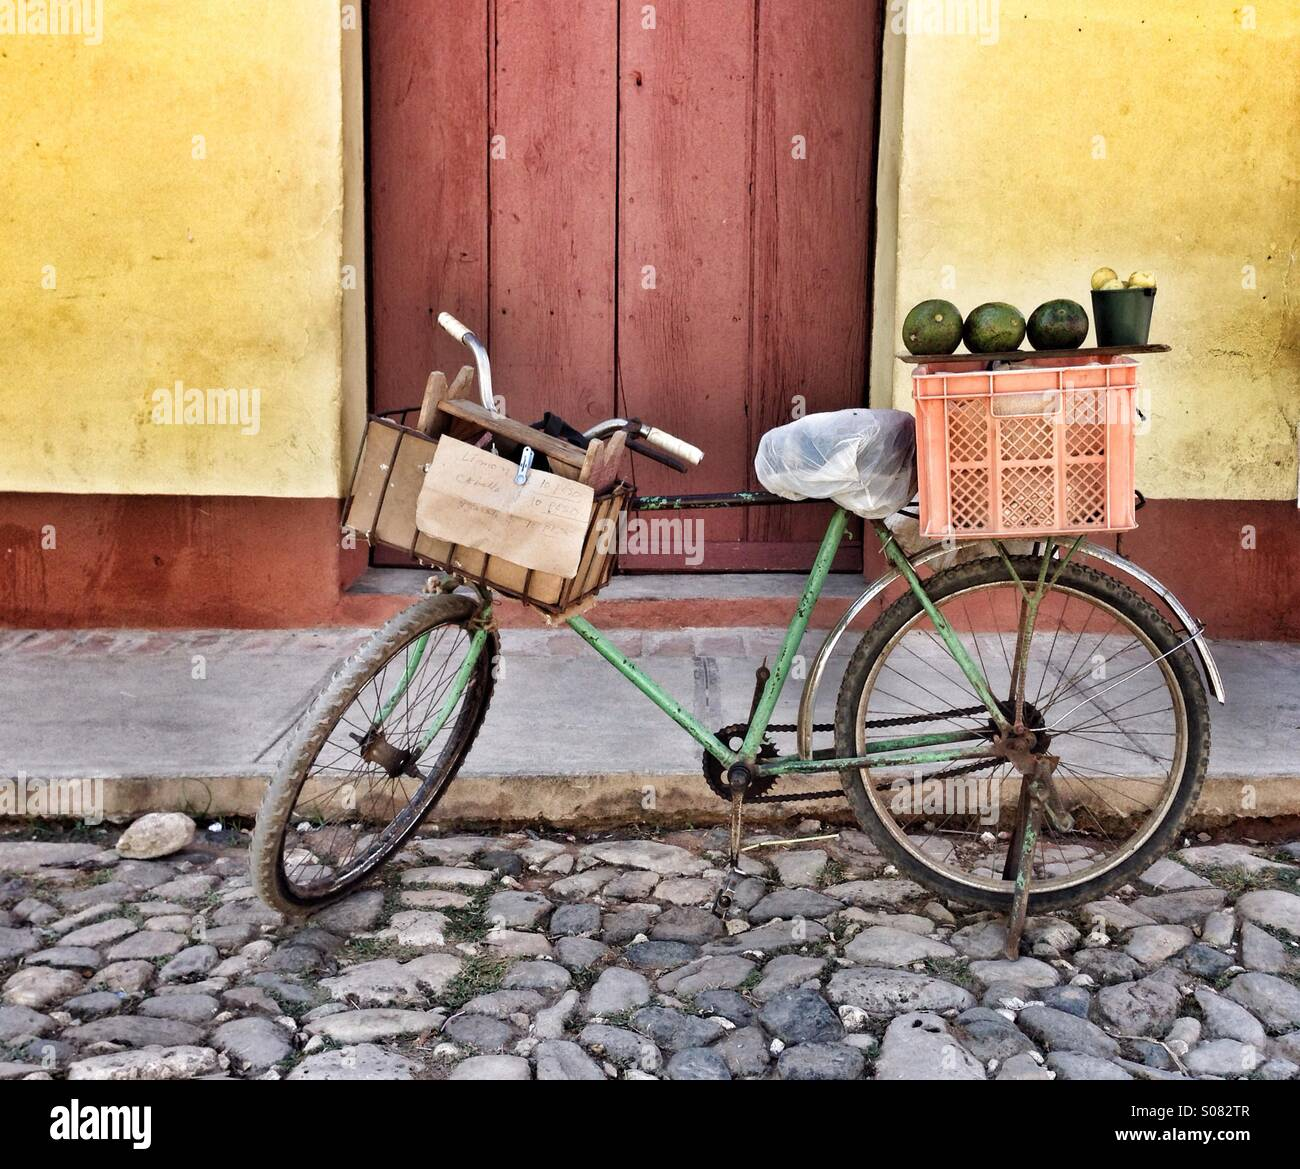 Fruit seller's bicycle with fruit produce lined up on a box at rear of bike. Stood in cobbled street in front - Stock Image